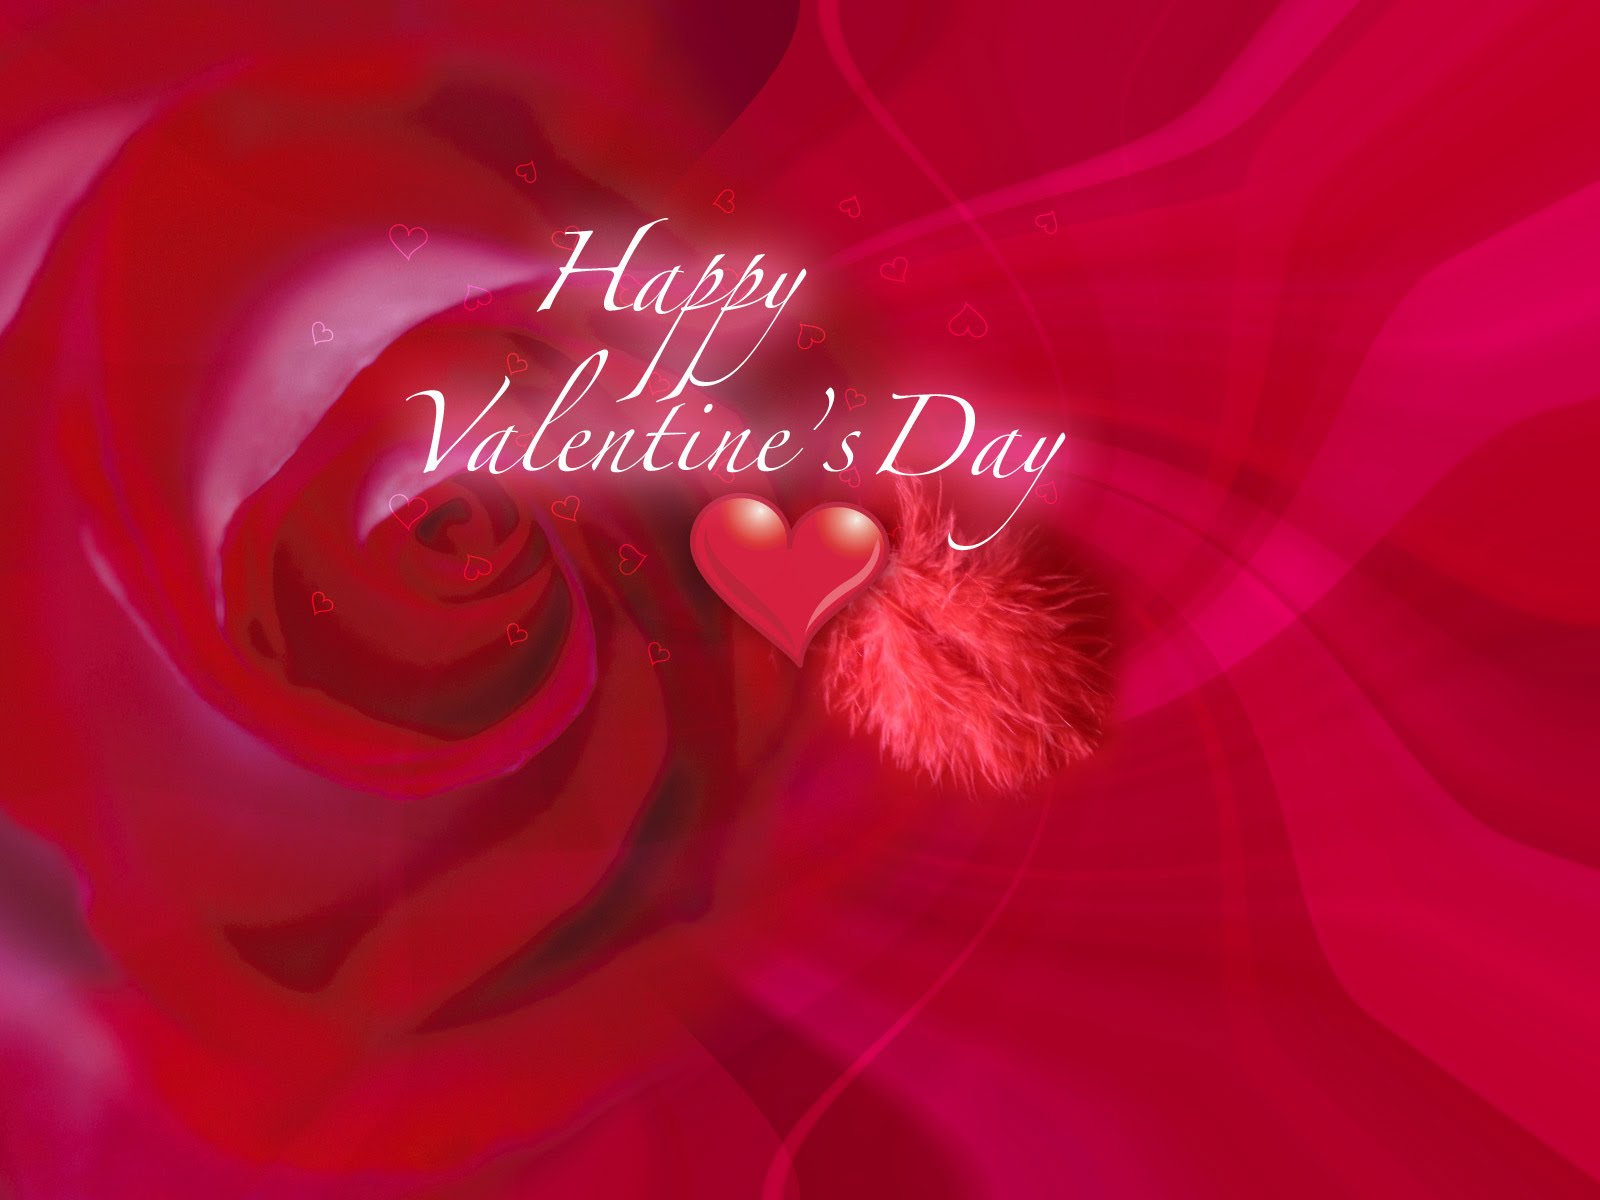 Warm Wishes Of Happy Valentines Day